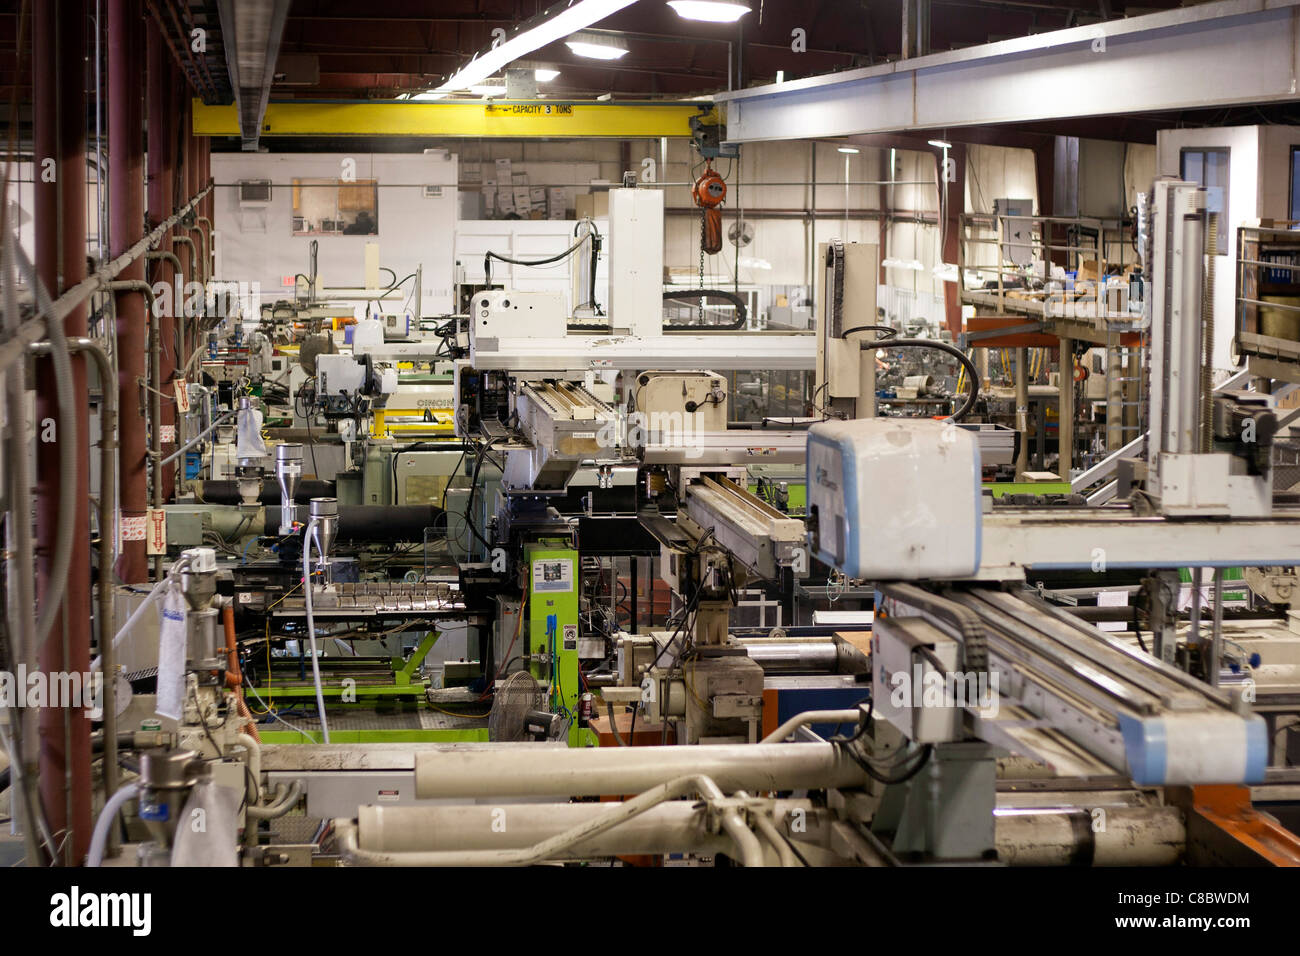 A plastics molding injection plant in Hudson, Colorado, USA. - Stock Image